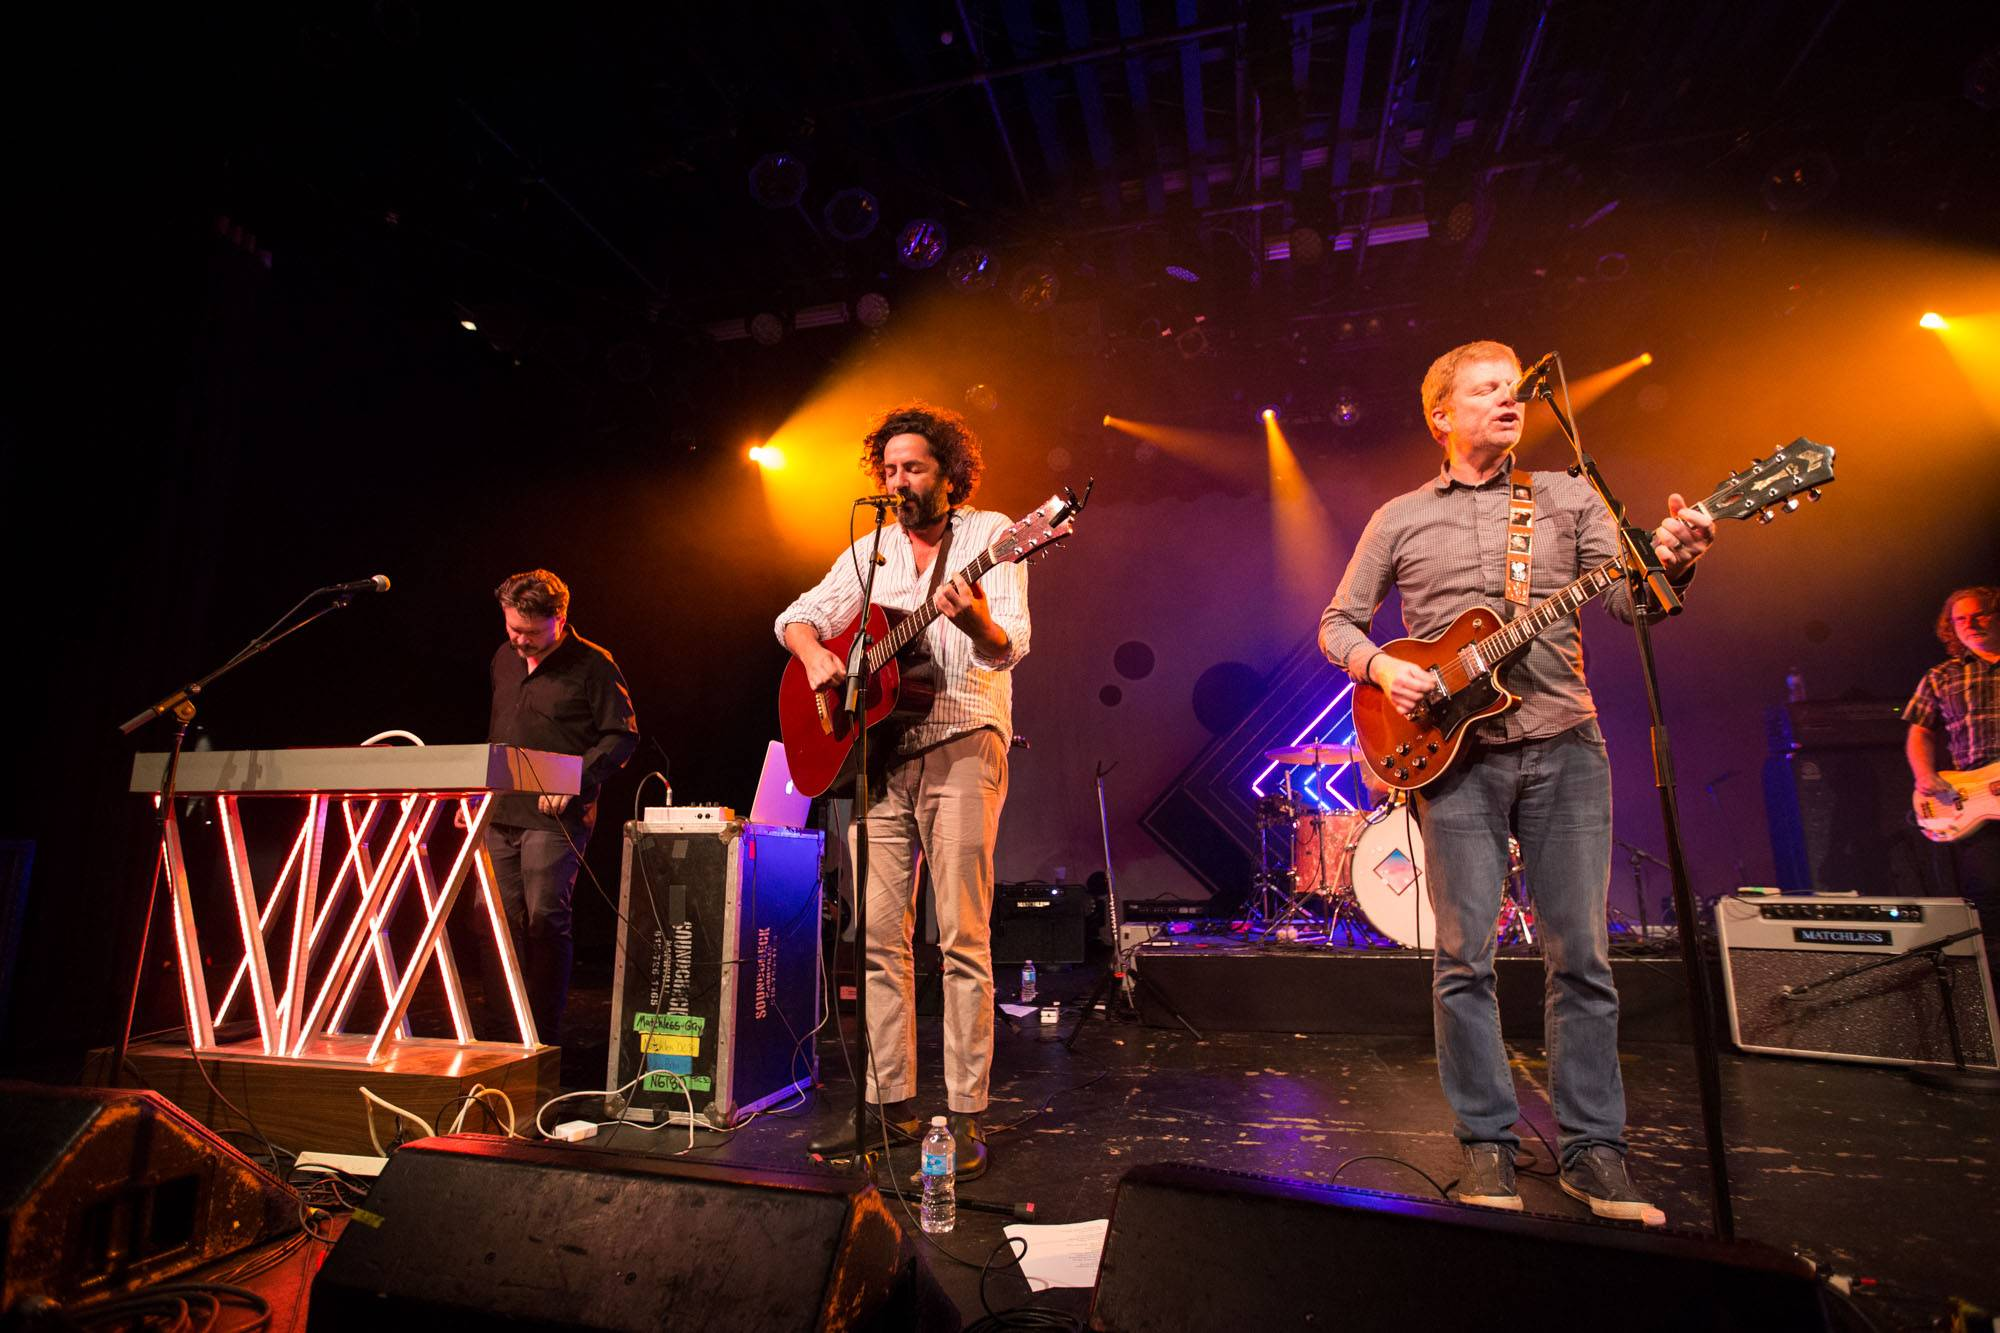 The New Pornographers at the Commodore Ballroom, Vancouver, Sept 29 2017. Kirk Chantraine photo.